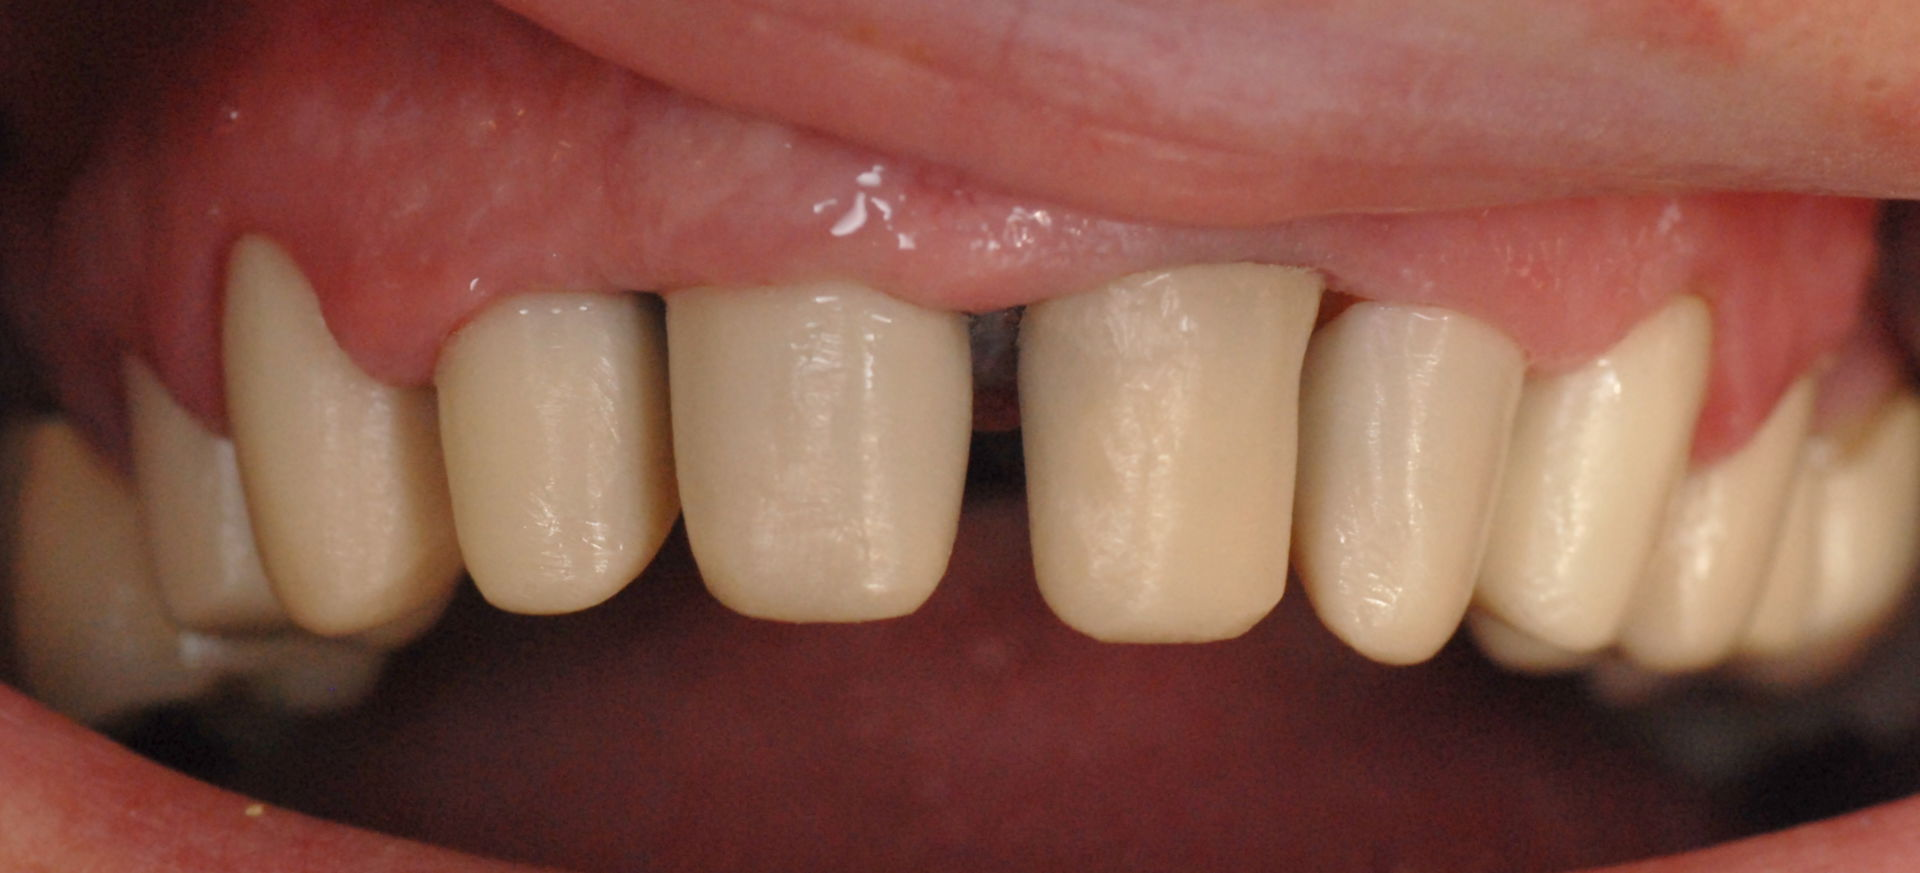 Fitting of the zirconia cap prosthetic in the mouth